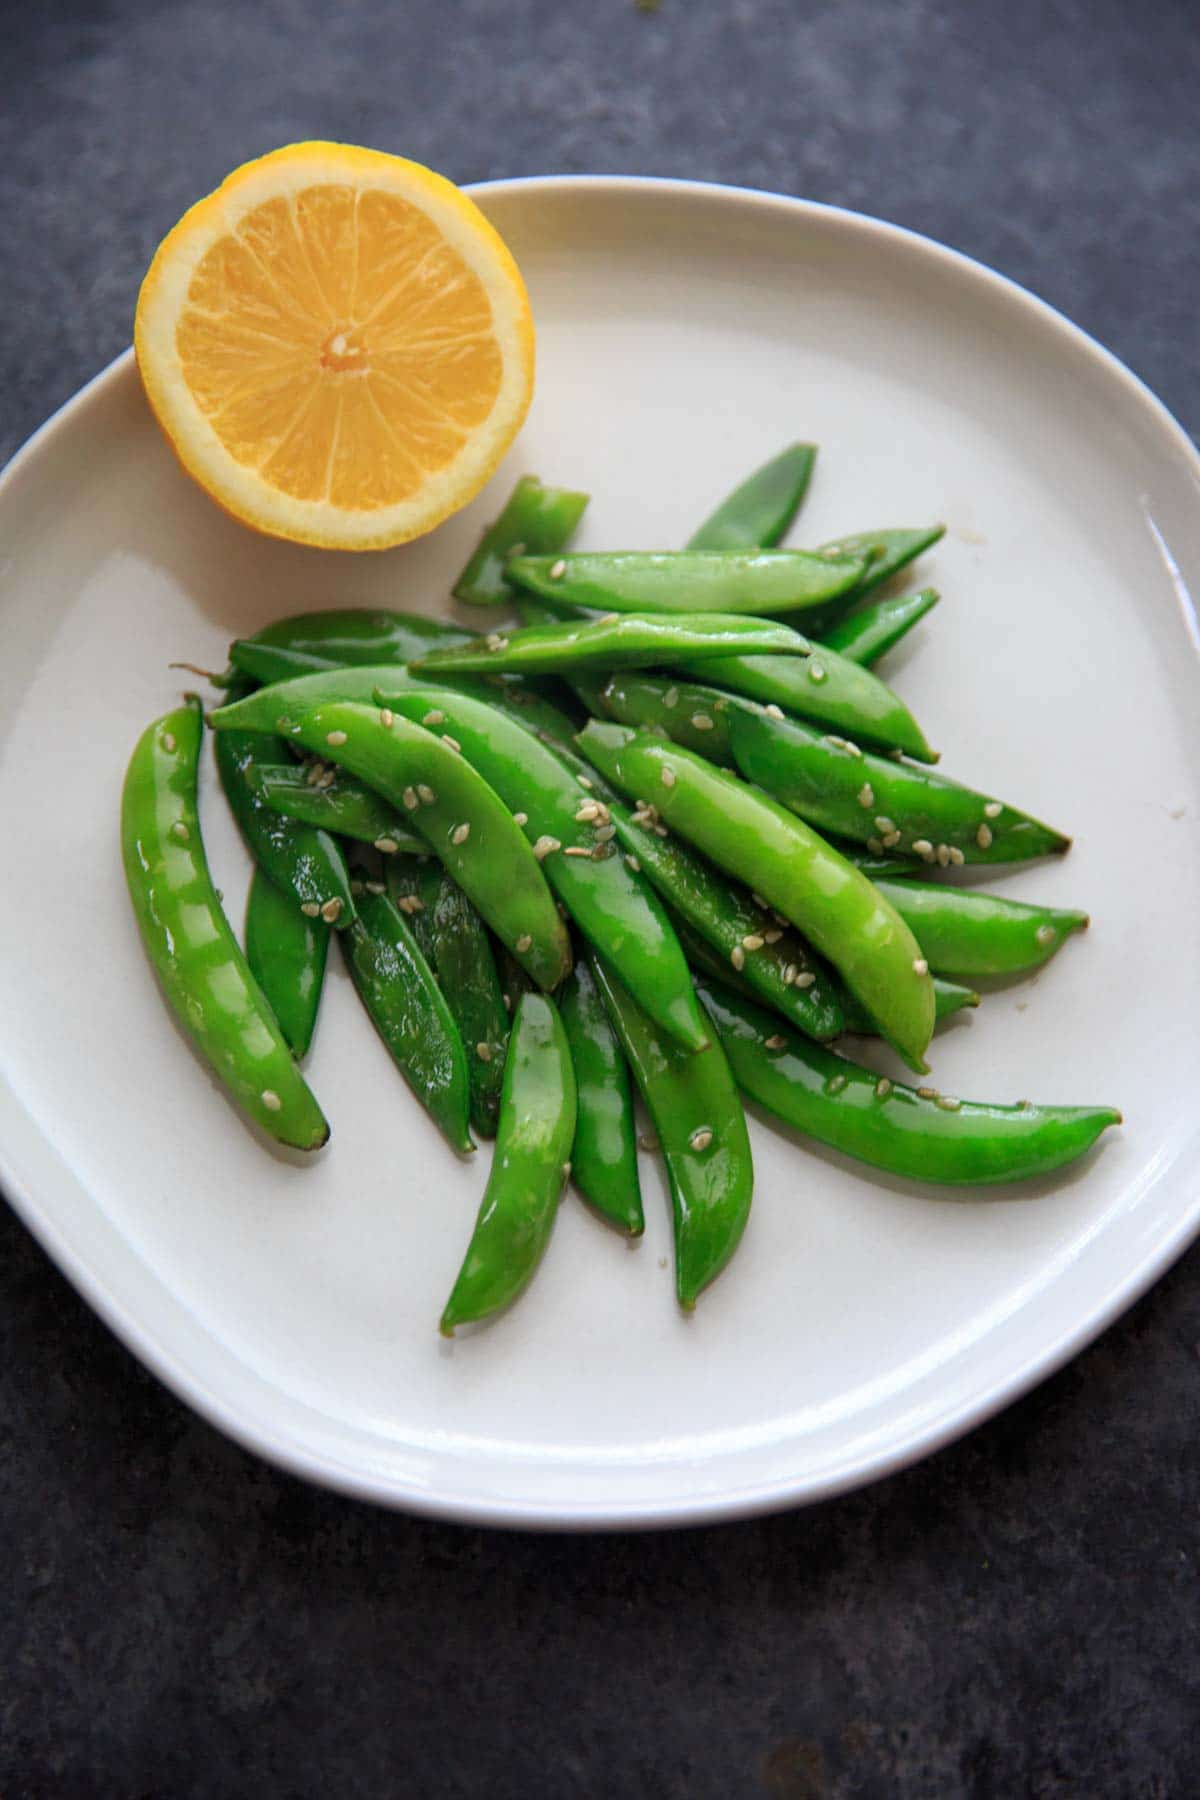 A citrusy and tasty vegetable side dish - Stir-fried Lemon Sesame Sugar Snap Peas! Eat as is for a side, add to pasta or salads.